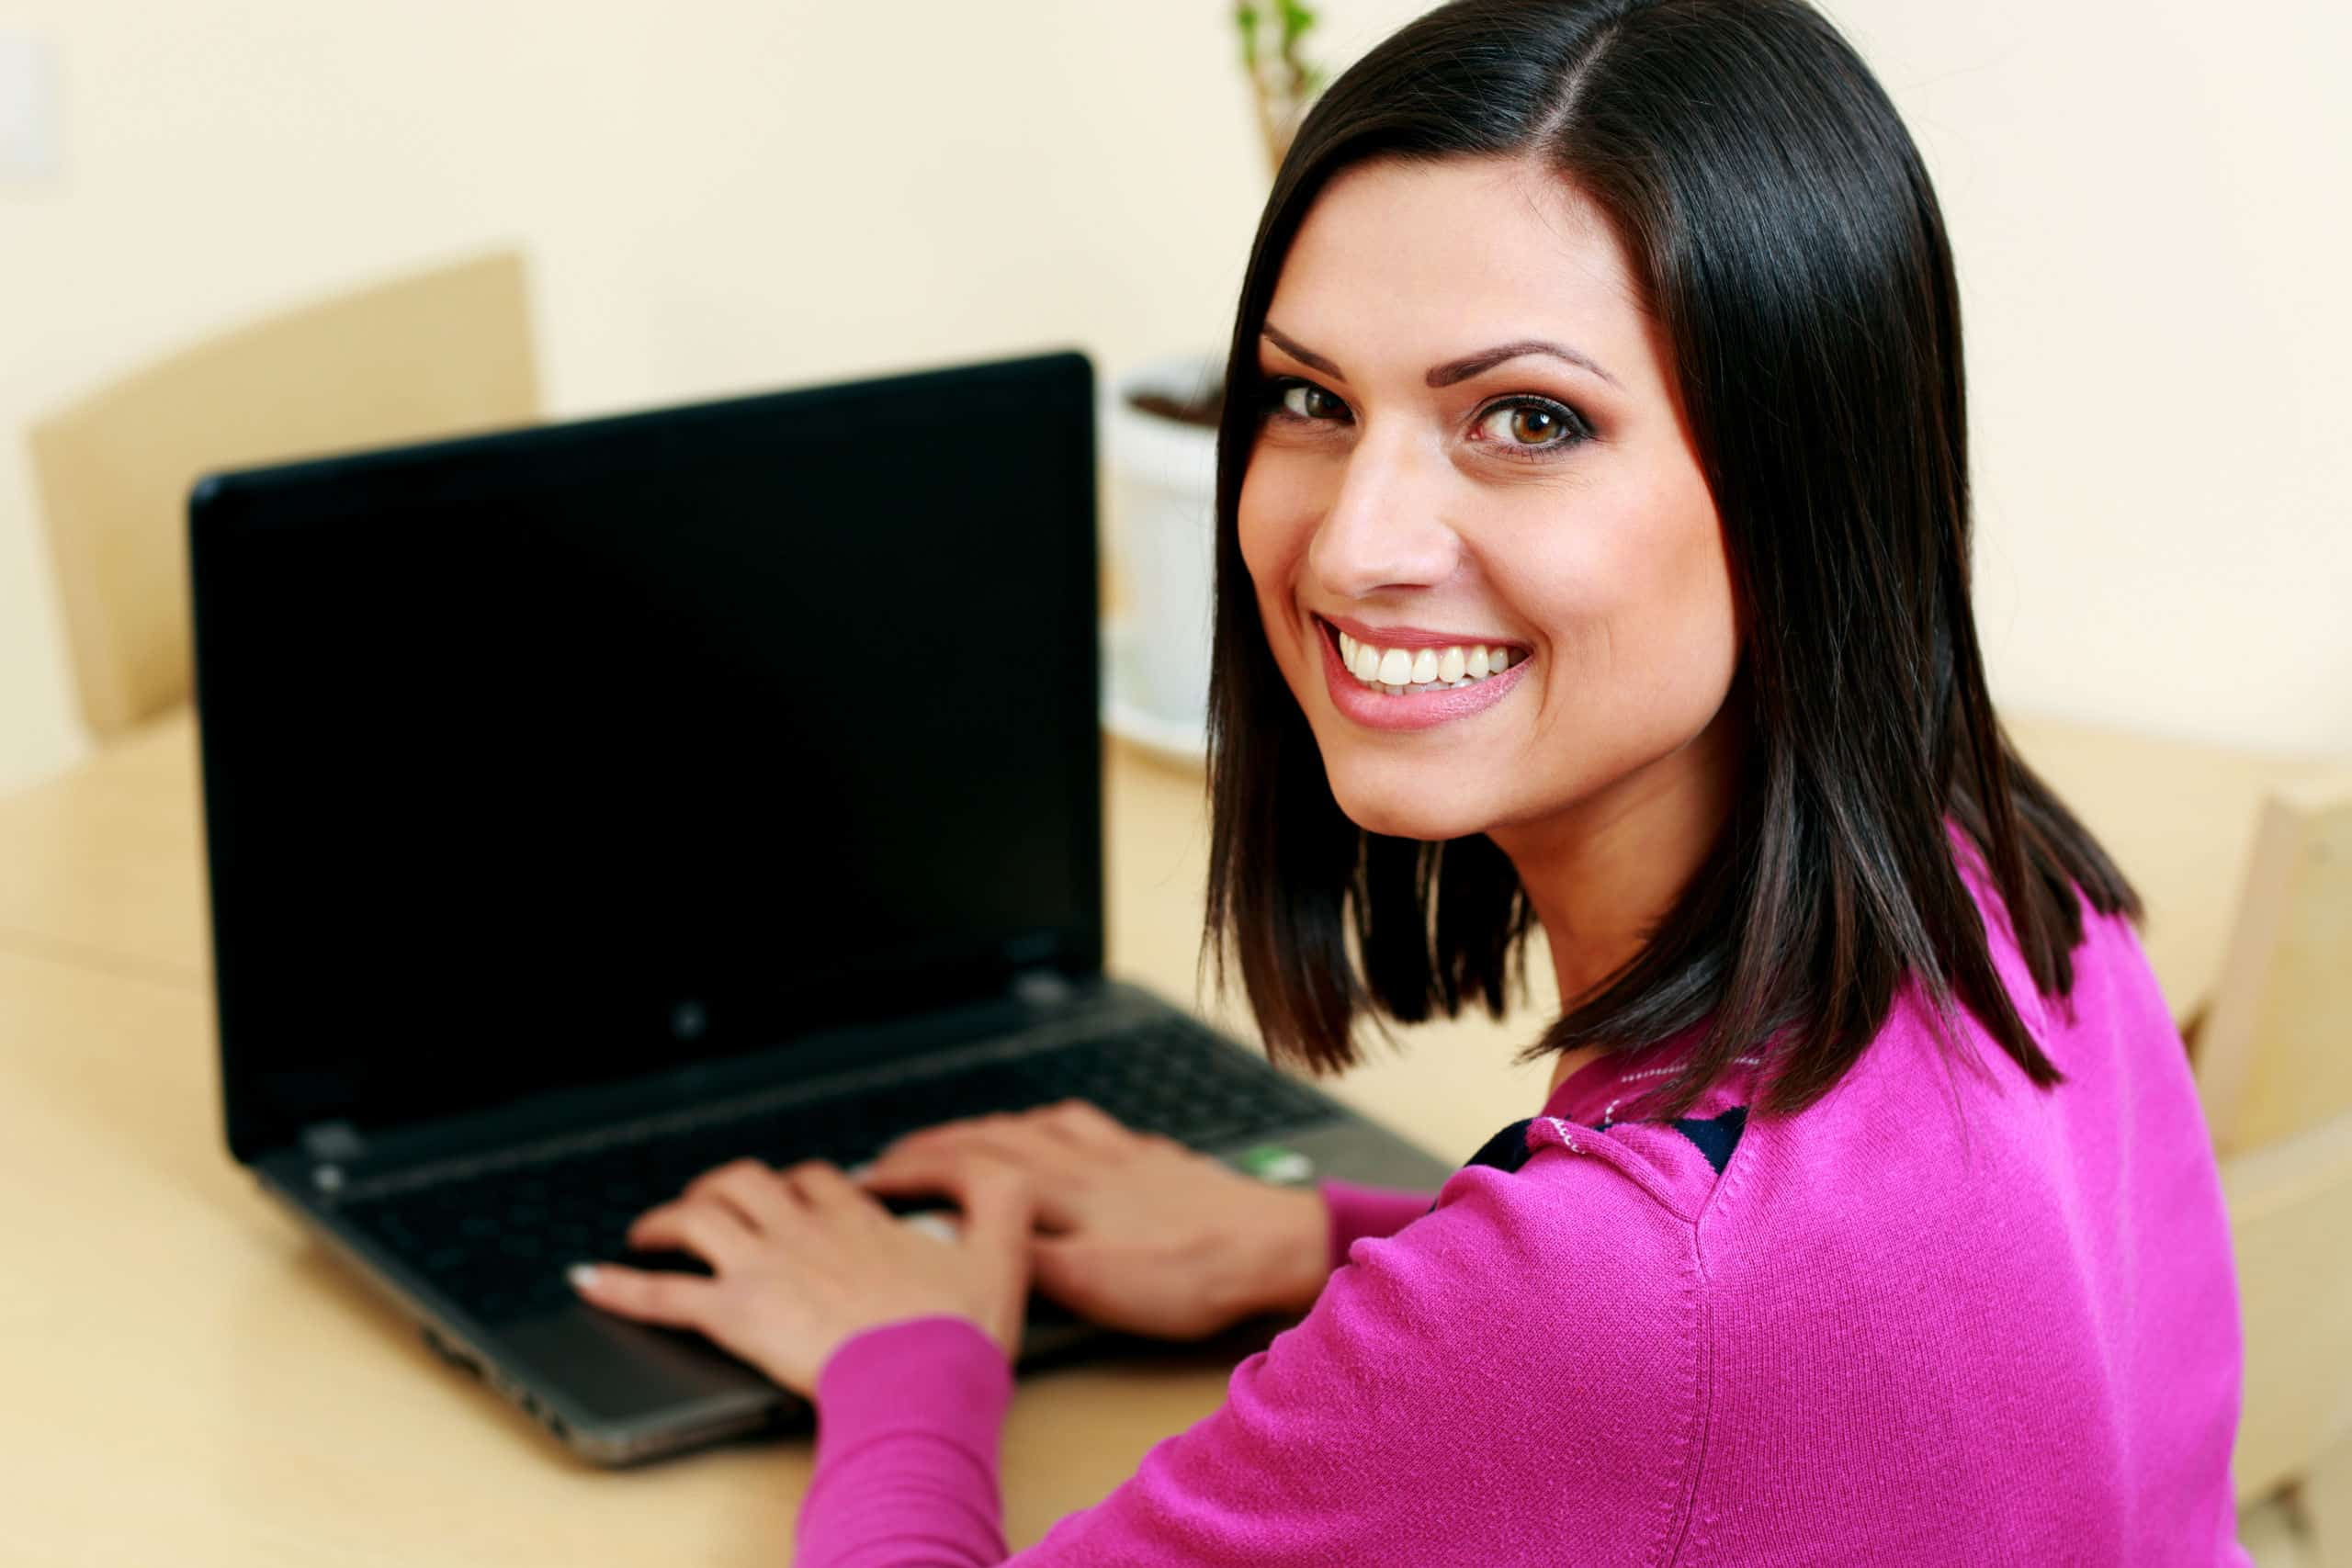 Net Transcripts: Home-Based Editors and Proofreaders Needed